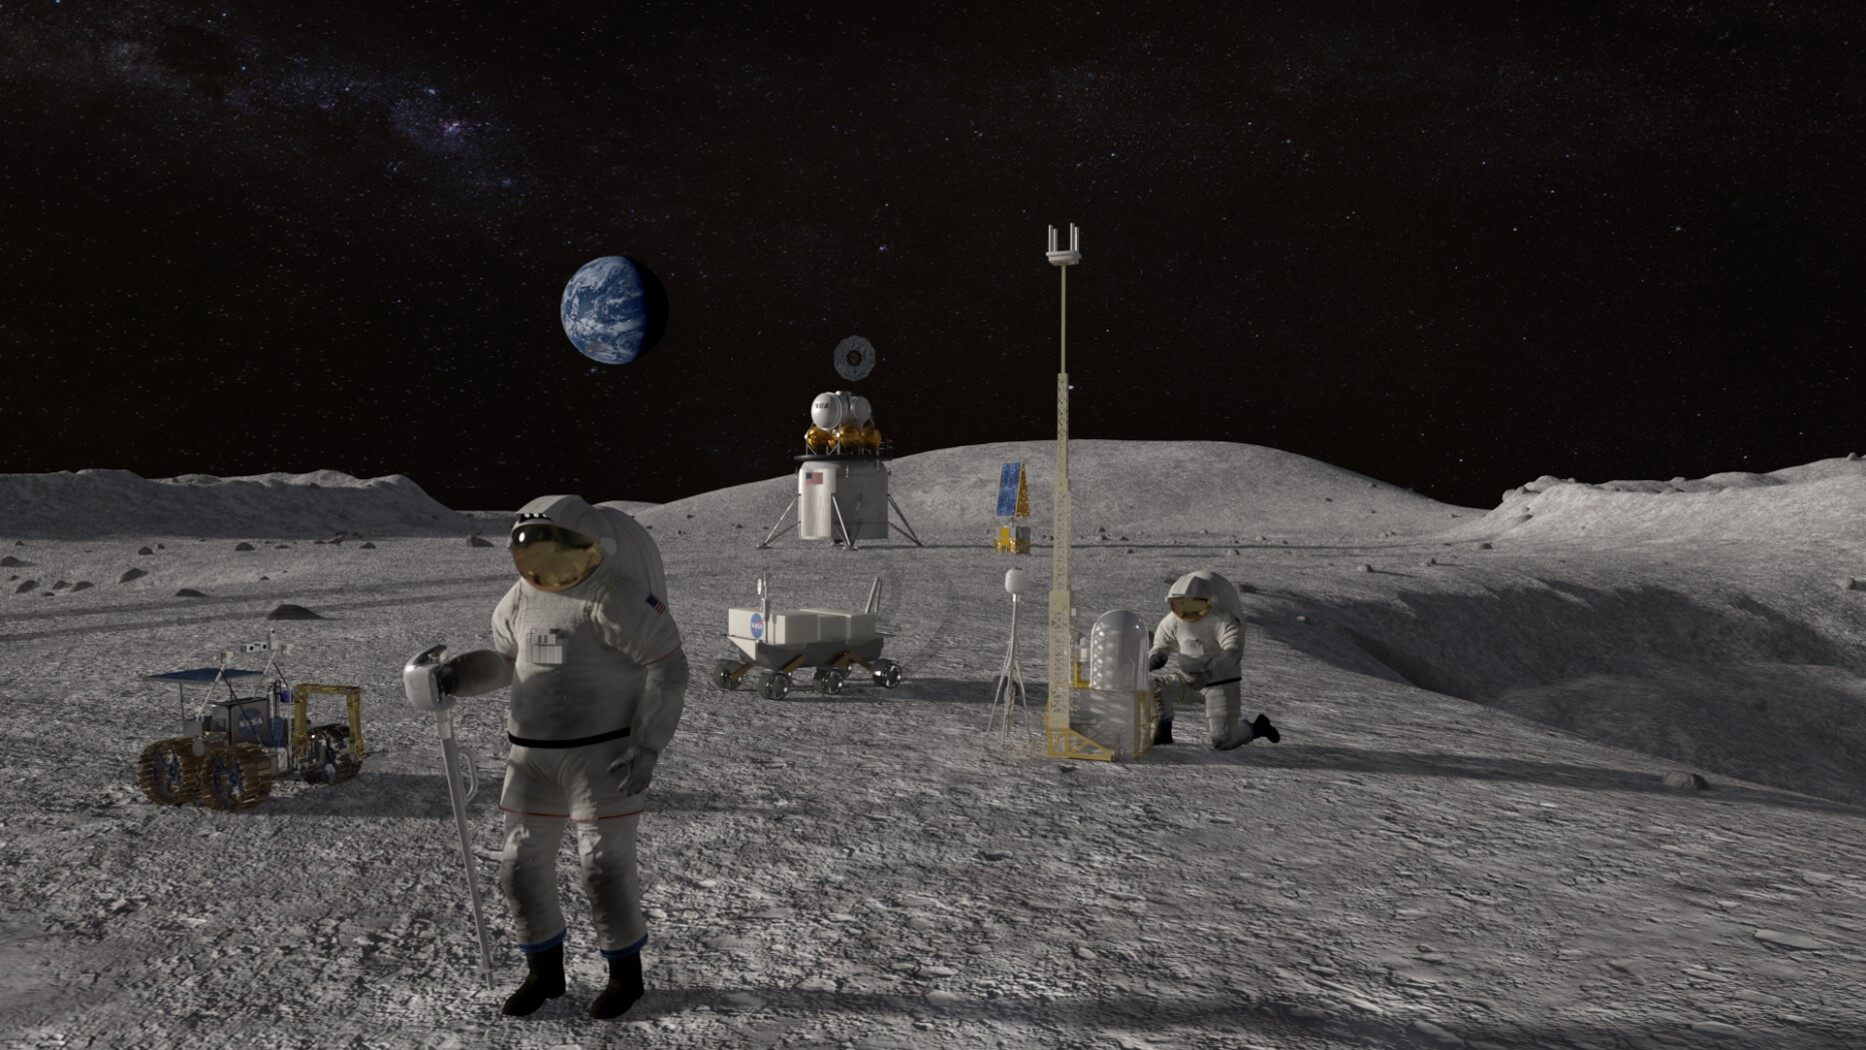 NASA describes how B 28b will be spent on orbiting astronauts to the moon in 2024